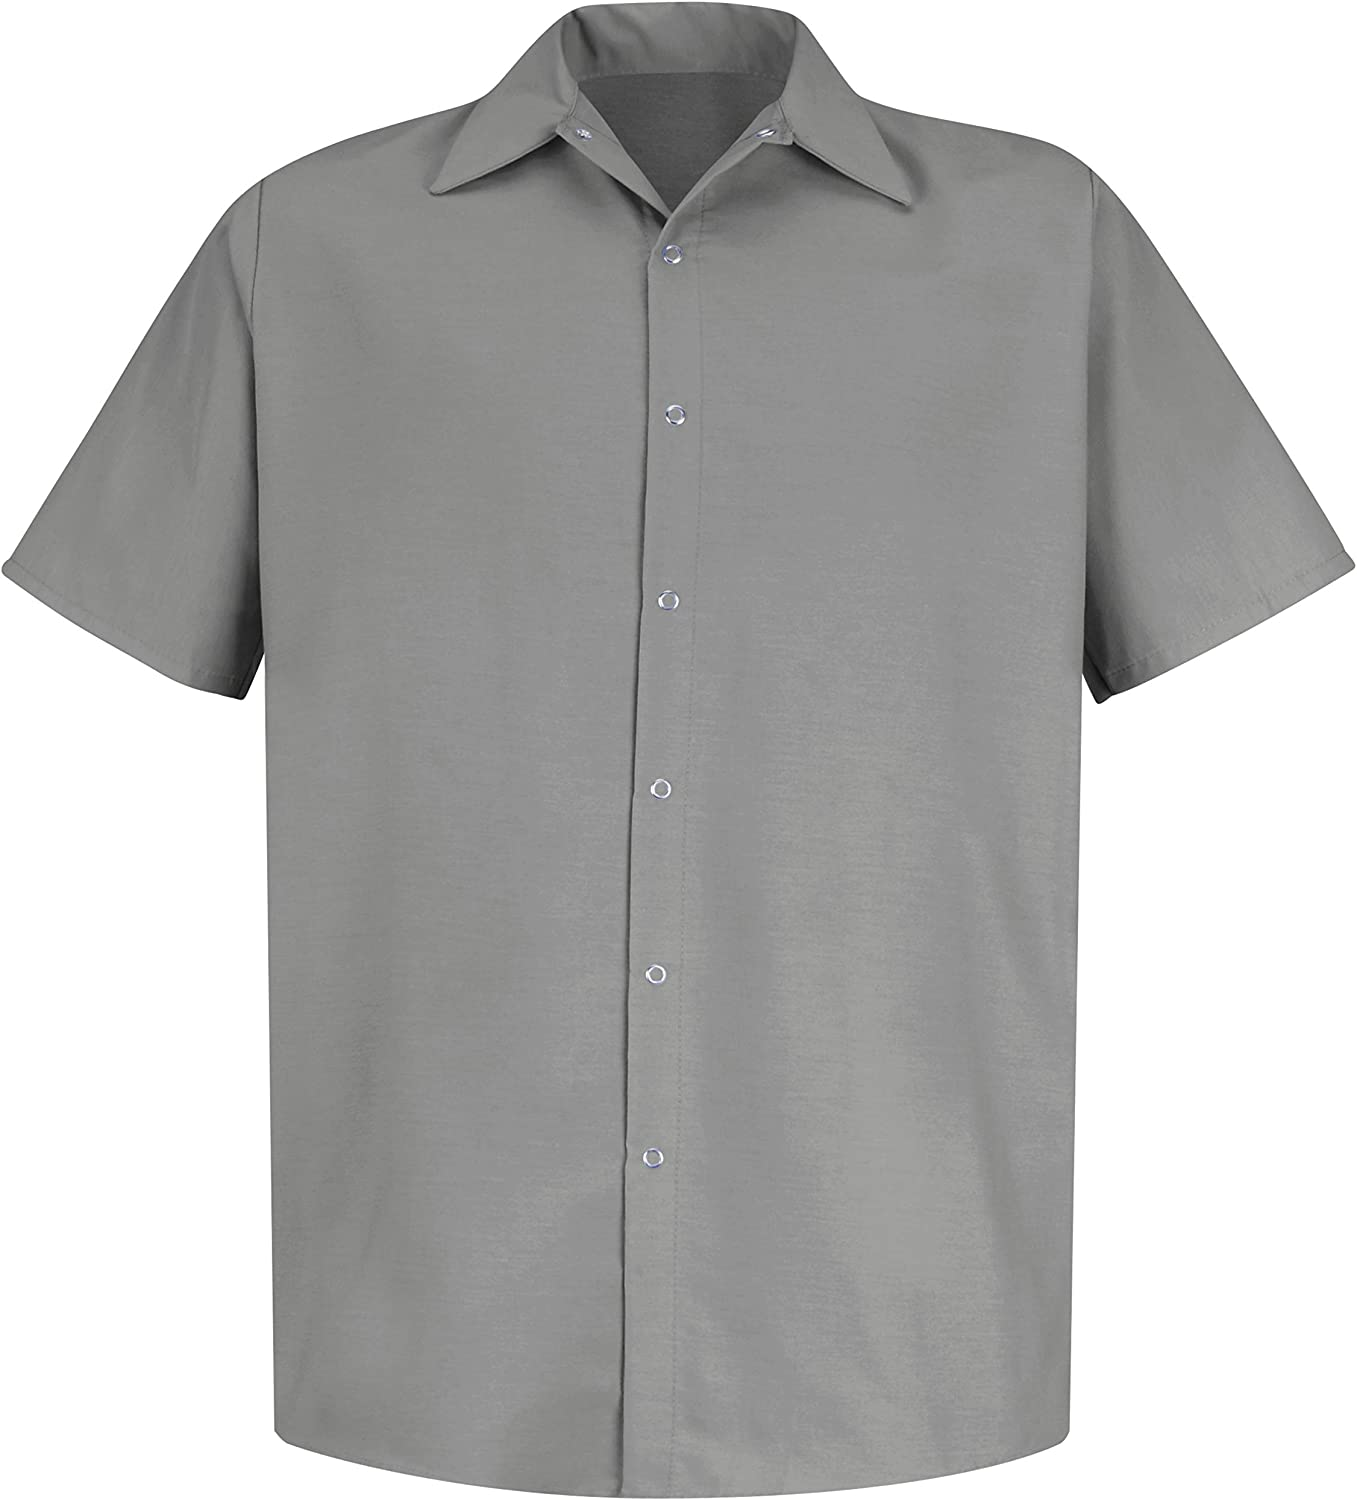 Red Selling Kap Men's Specialized Work Large special price !! Pocketless Shirt